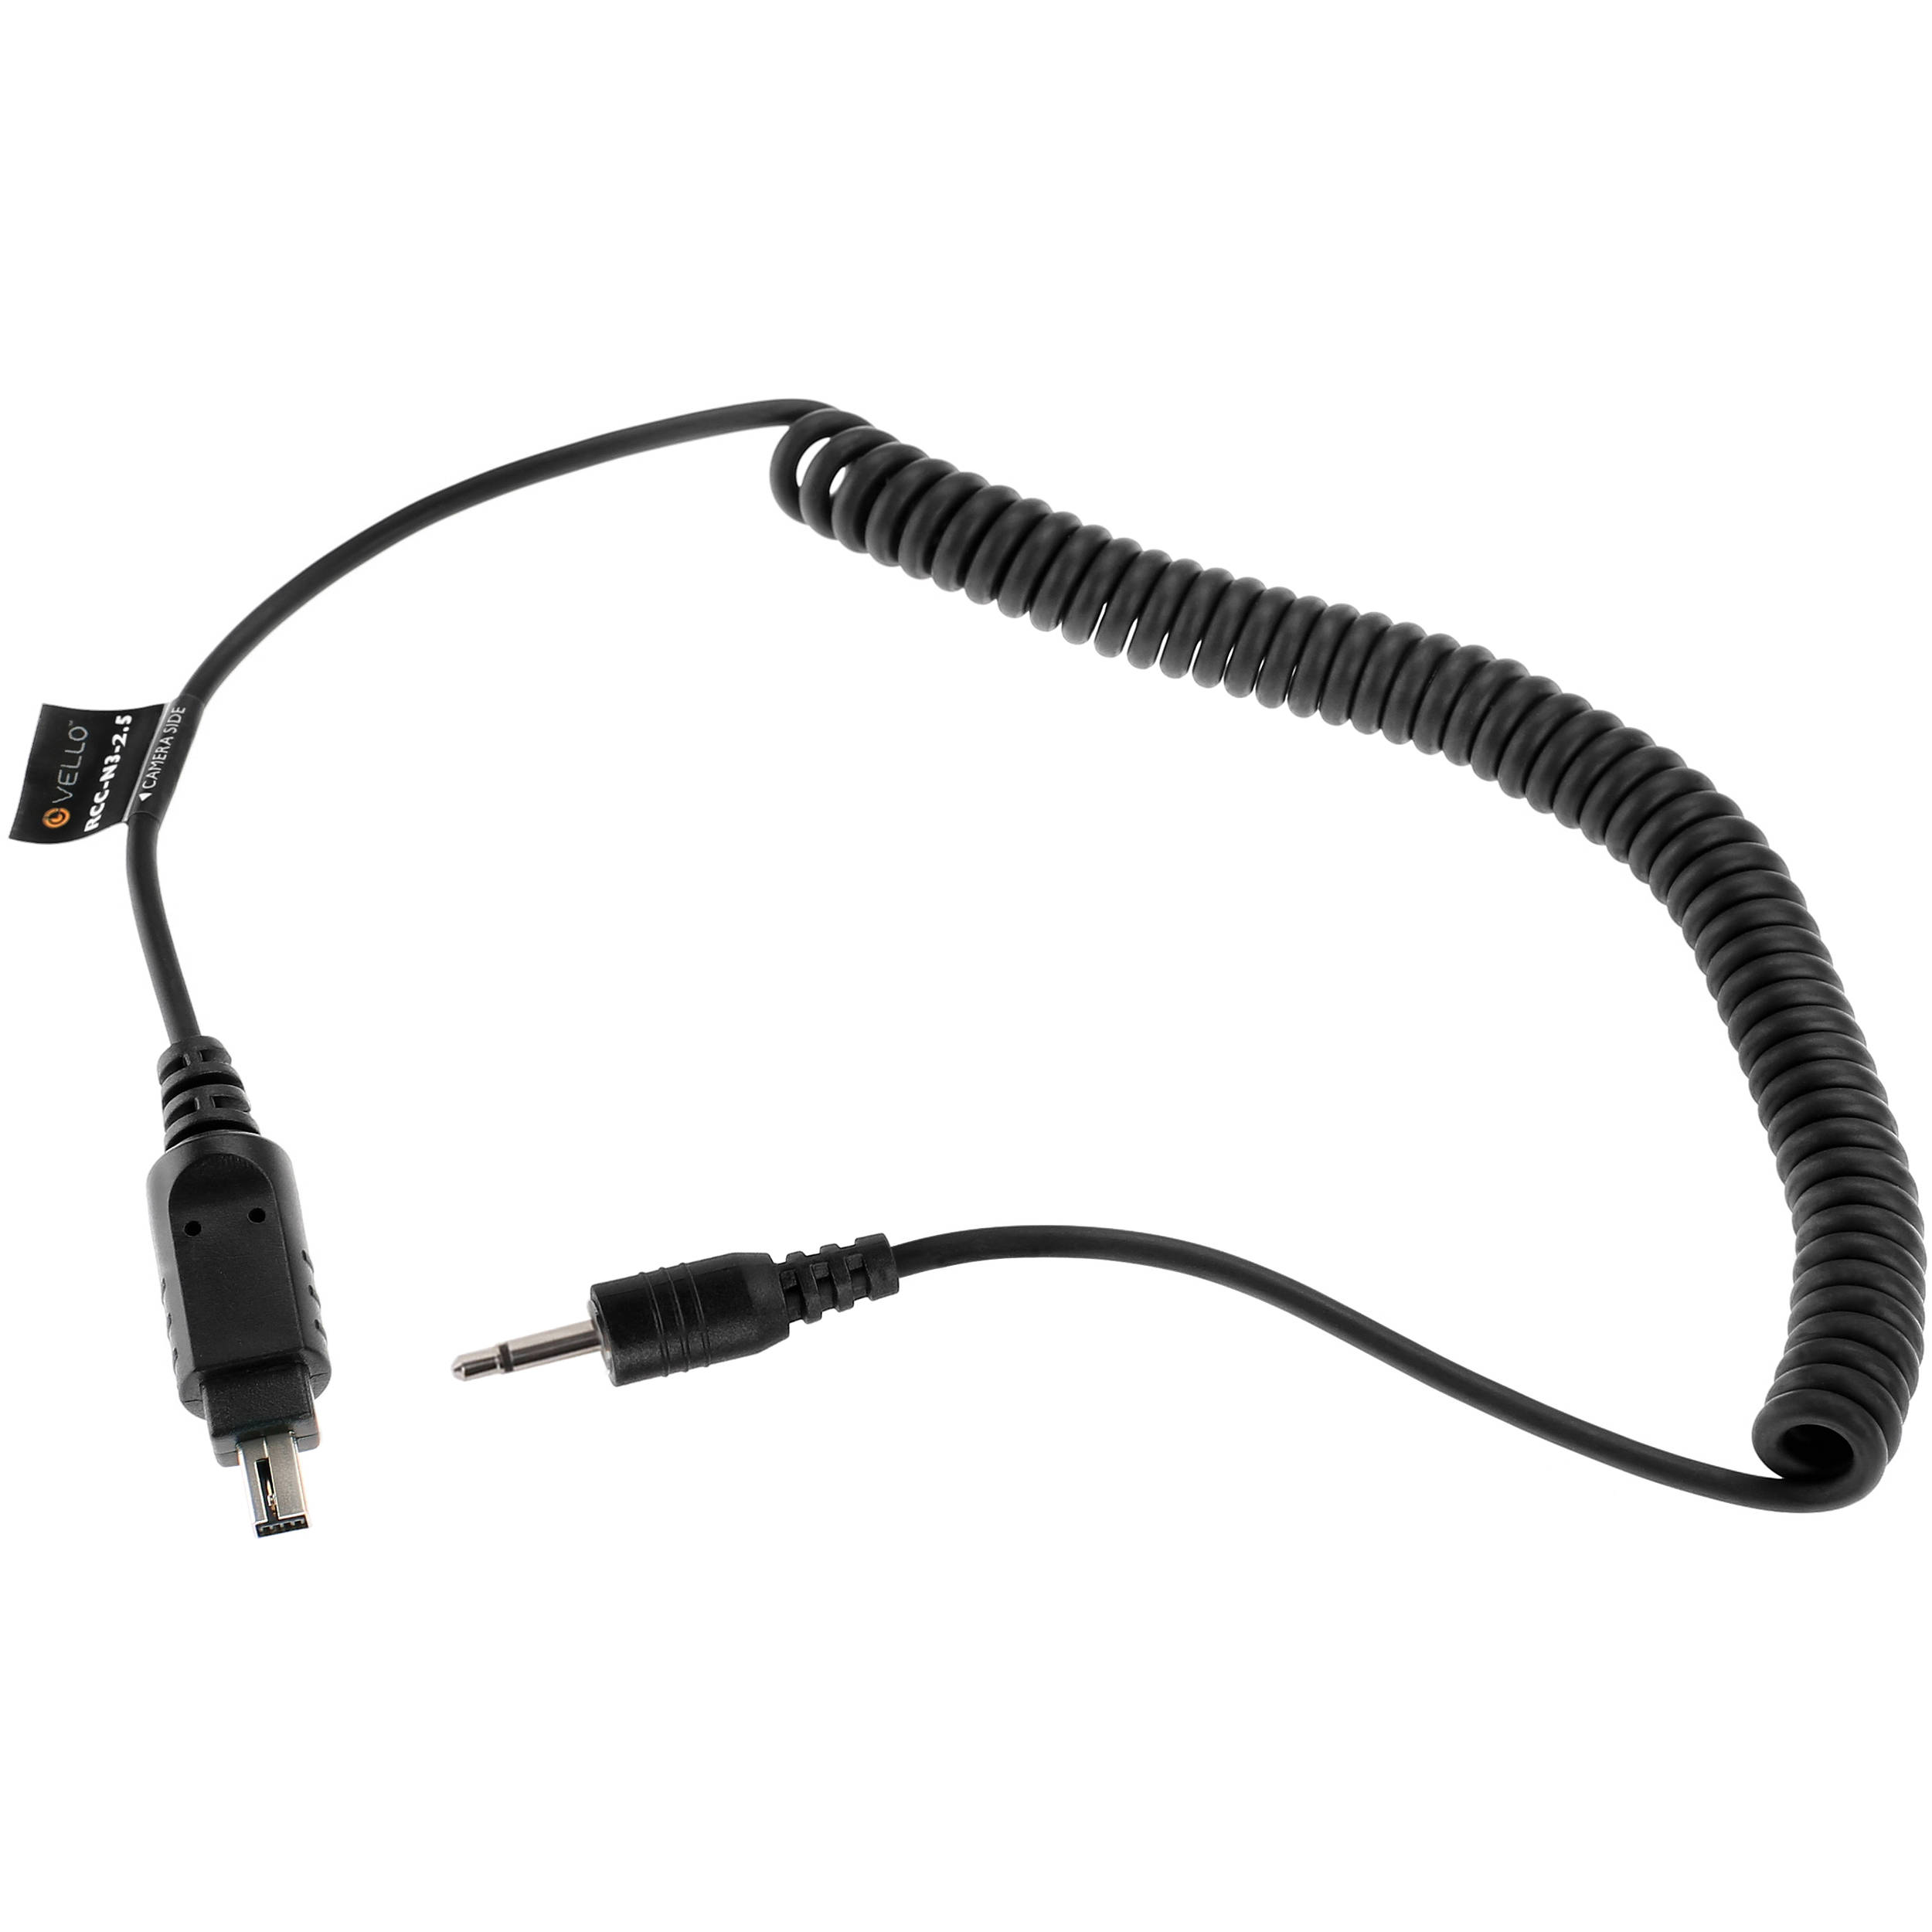 Vello 2 5mm Remote Shutter Release Cable For Nikon Rcc N3 2 5